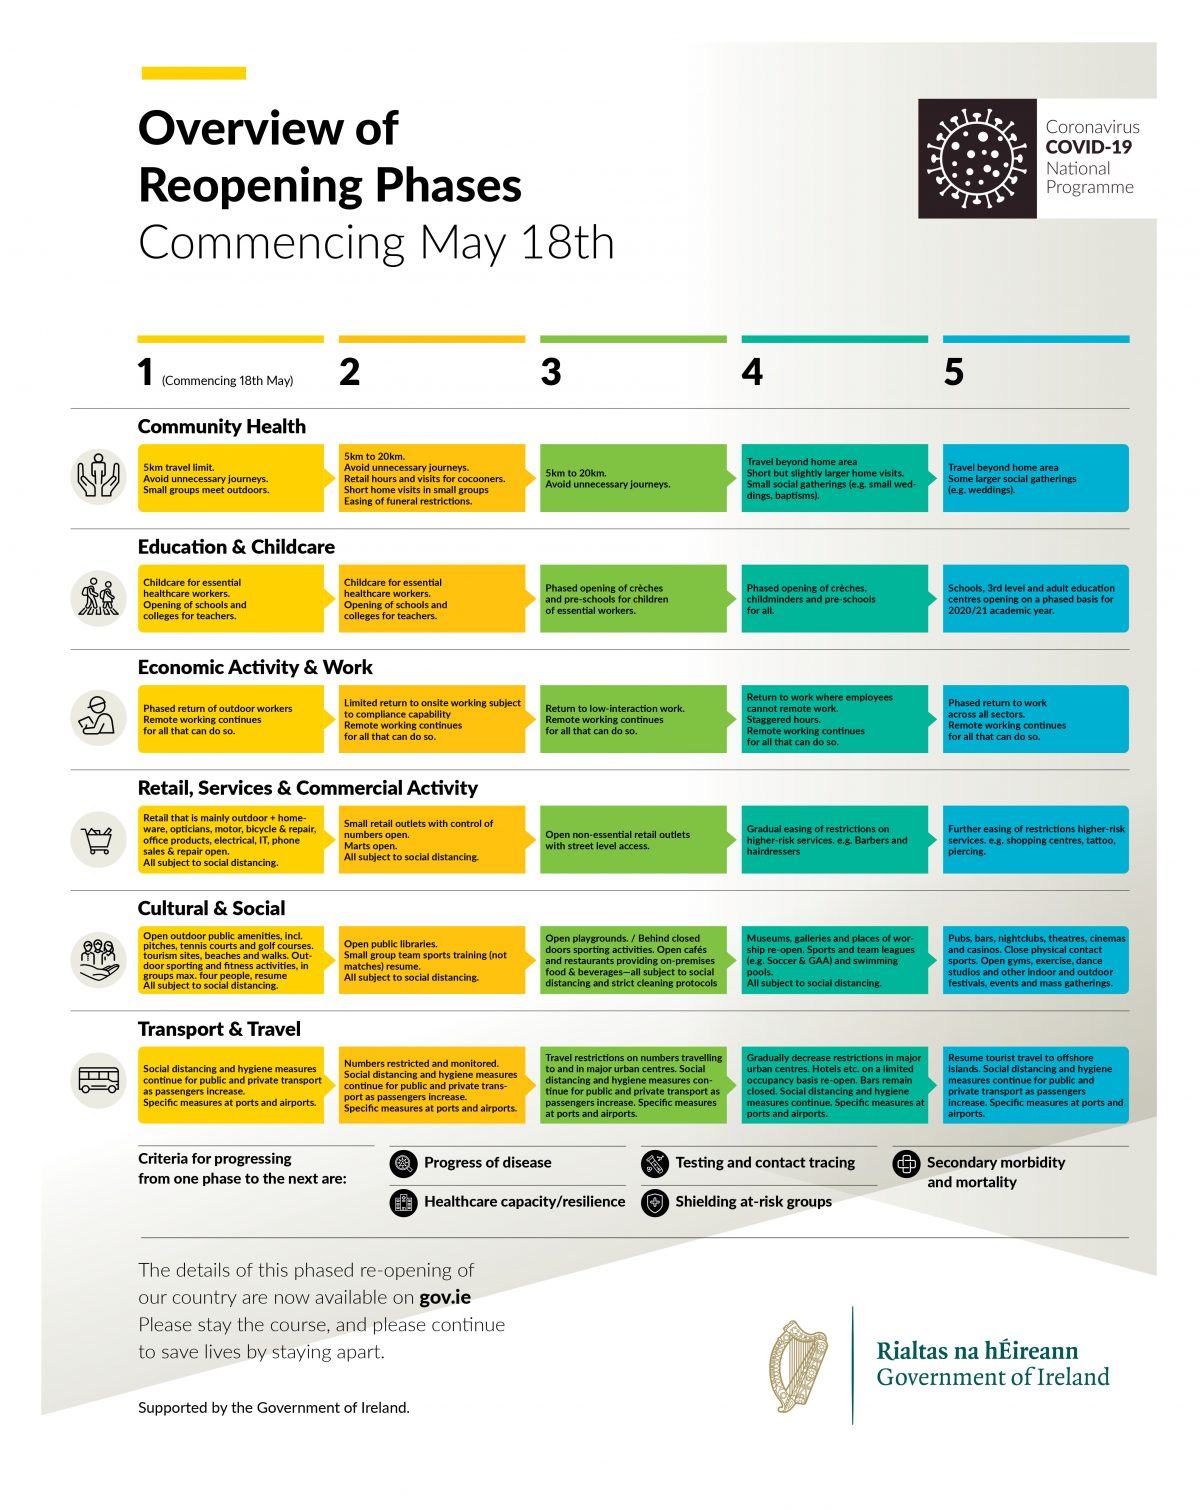 Overview of Phase 1 of the Government's Roadmap for Modifying Restrictions imposed to combat the COVID-19 Pandemic